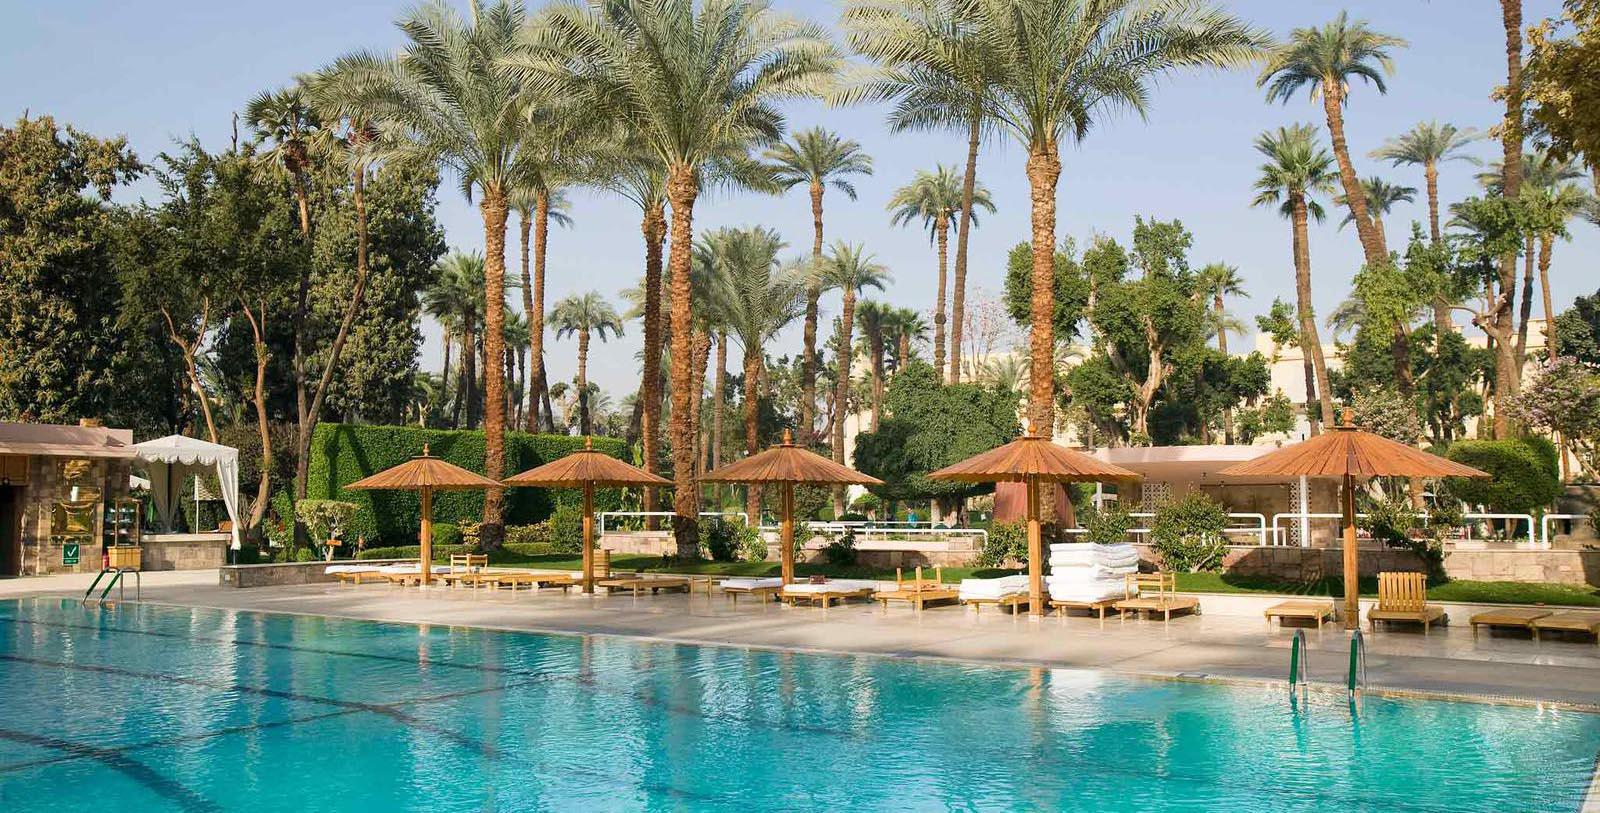 Image of Outdoor Pool at Sofitel Winter Palace Luxor, 1886, Member of Historic Hotels Worldwide, in Luxor, Egypt, Hot Deals